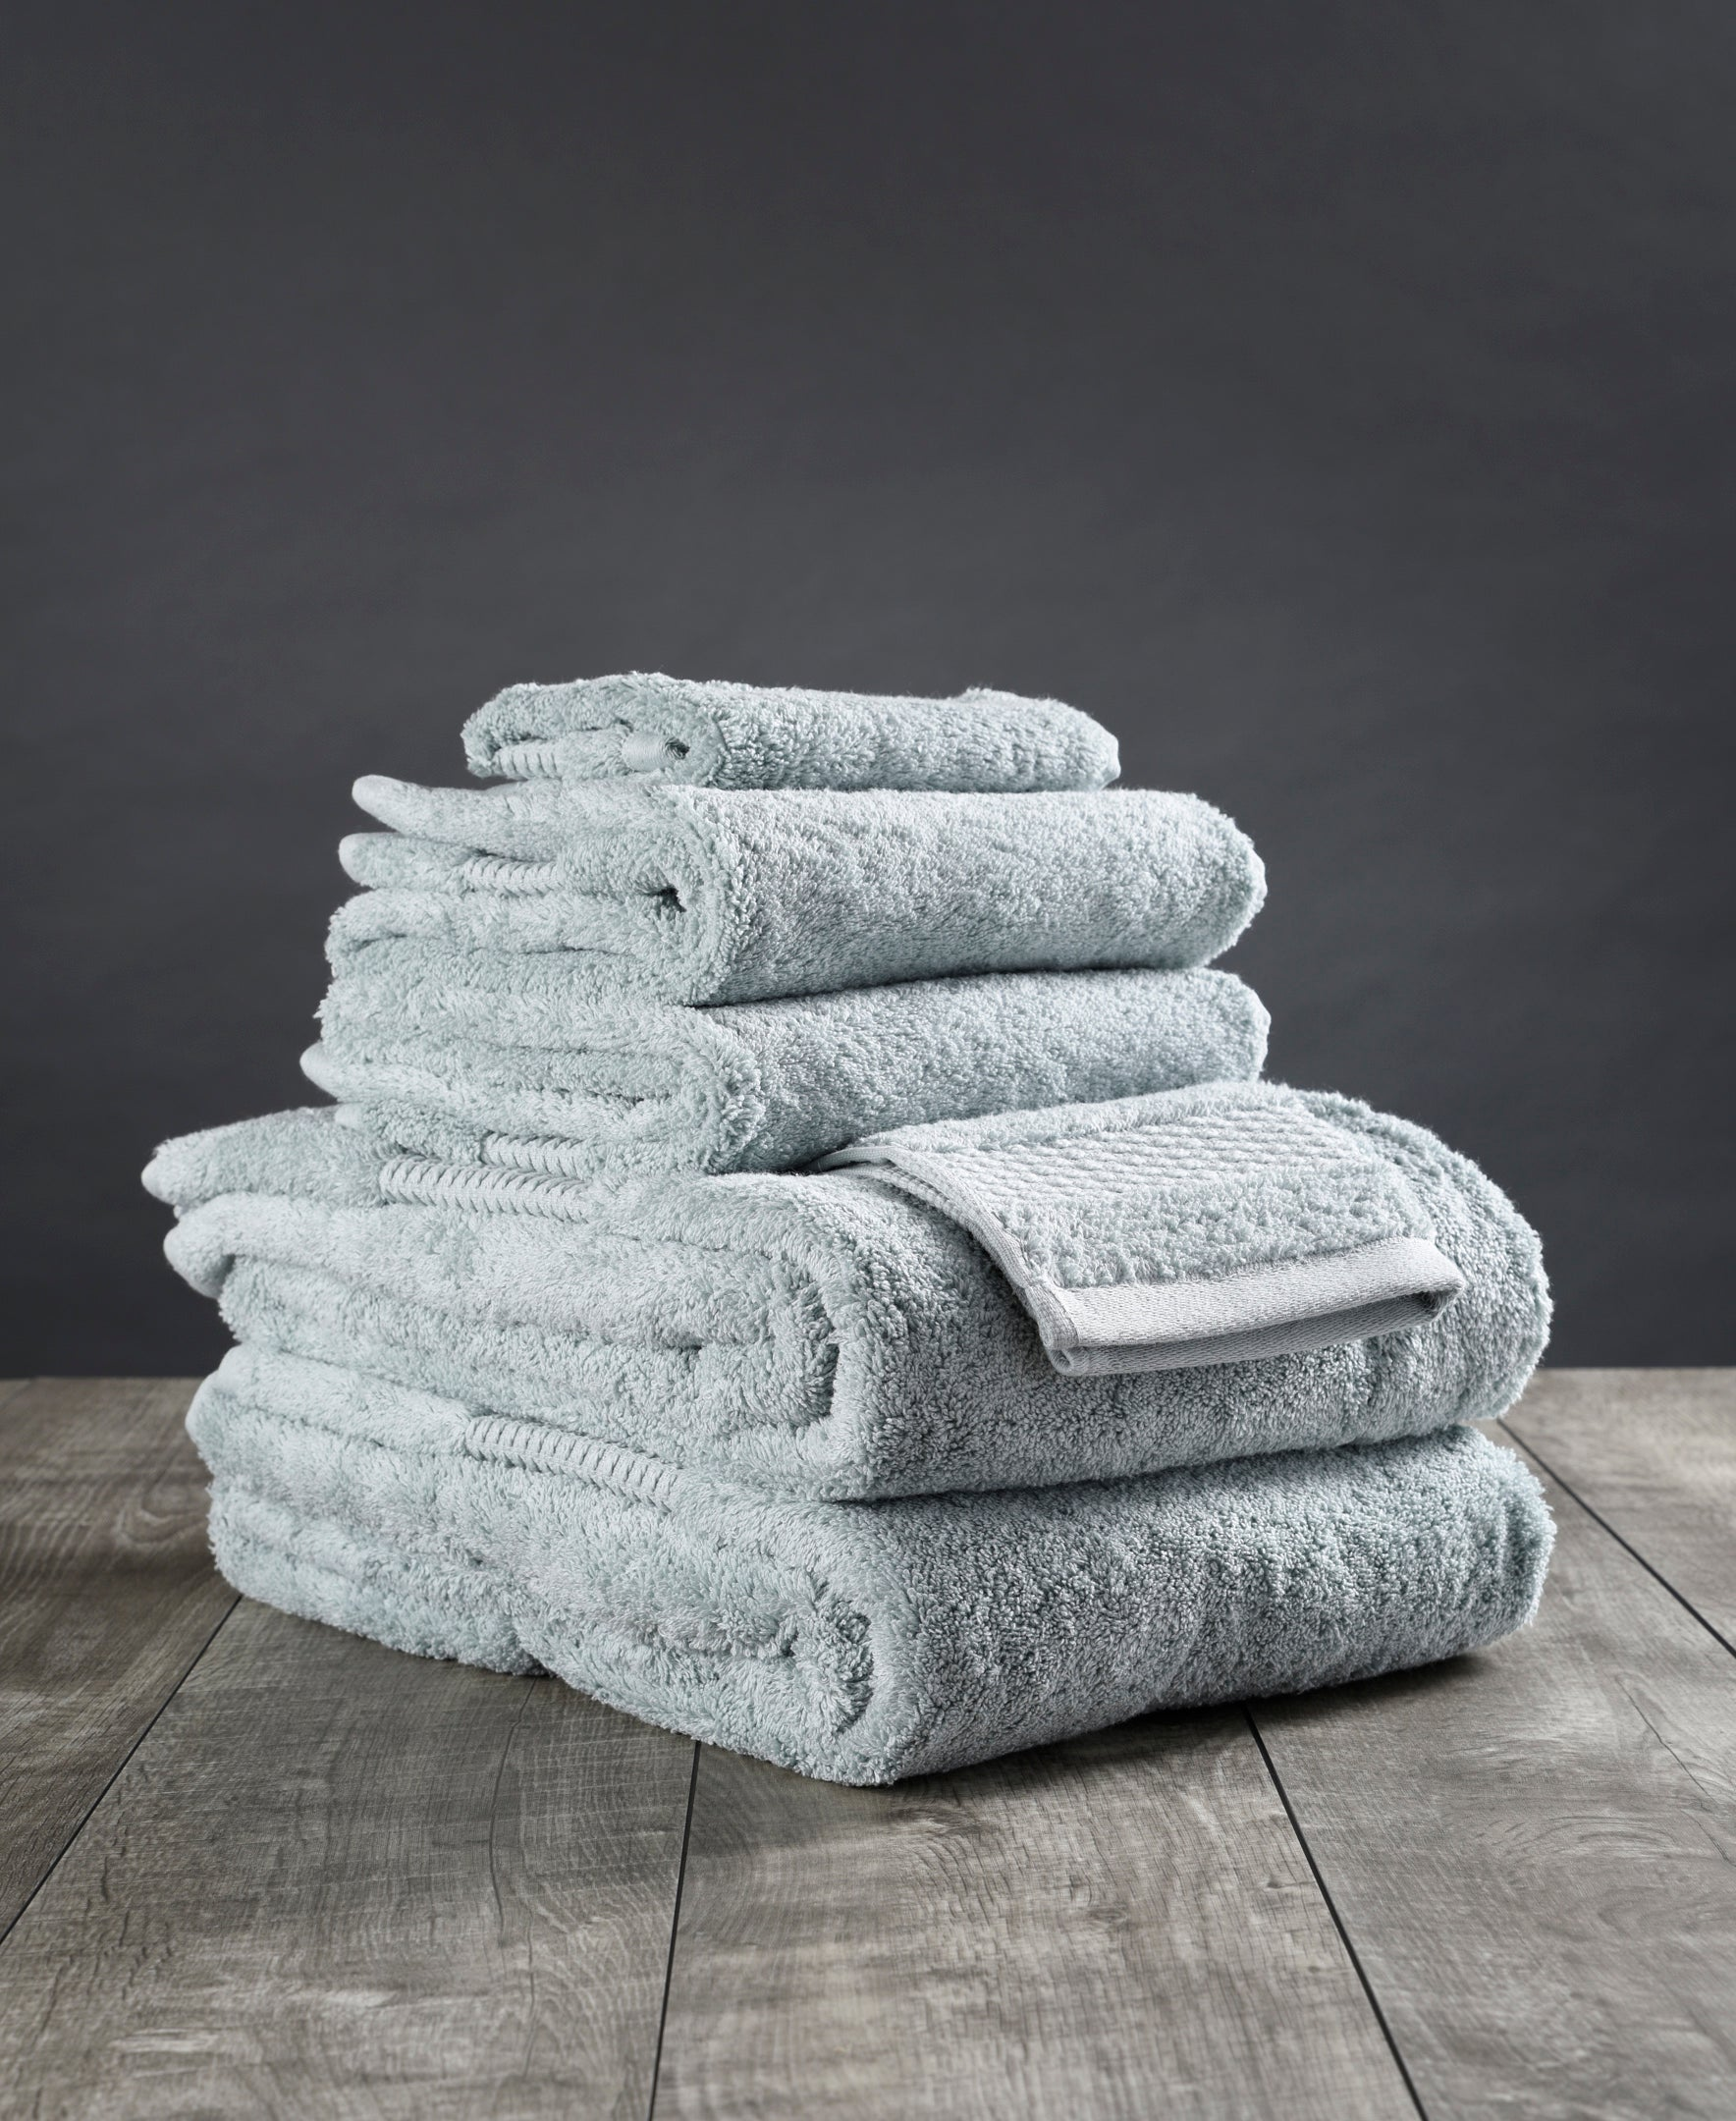 A stack of grey towels.